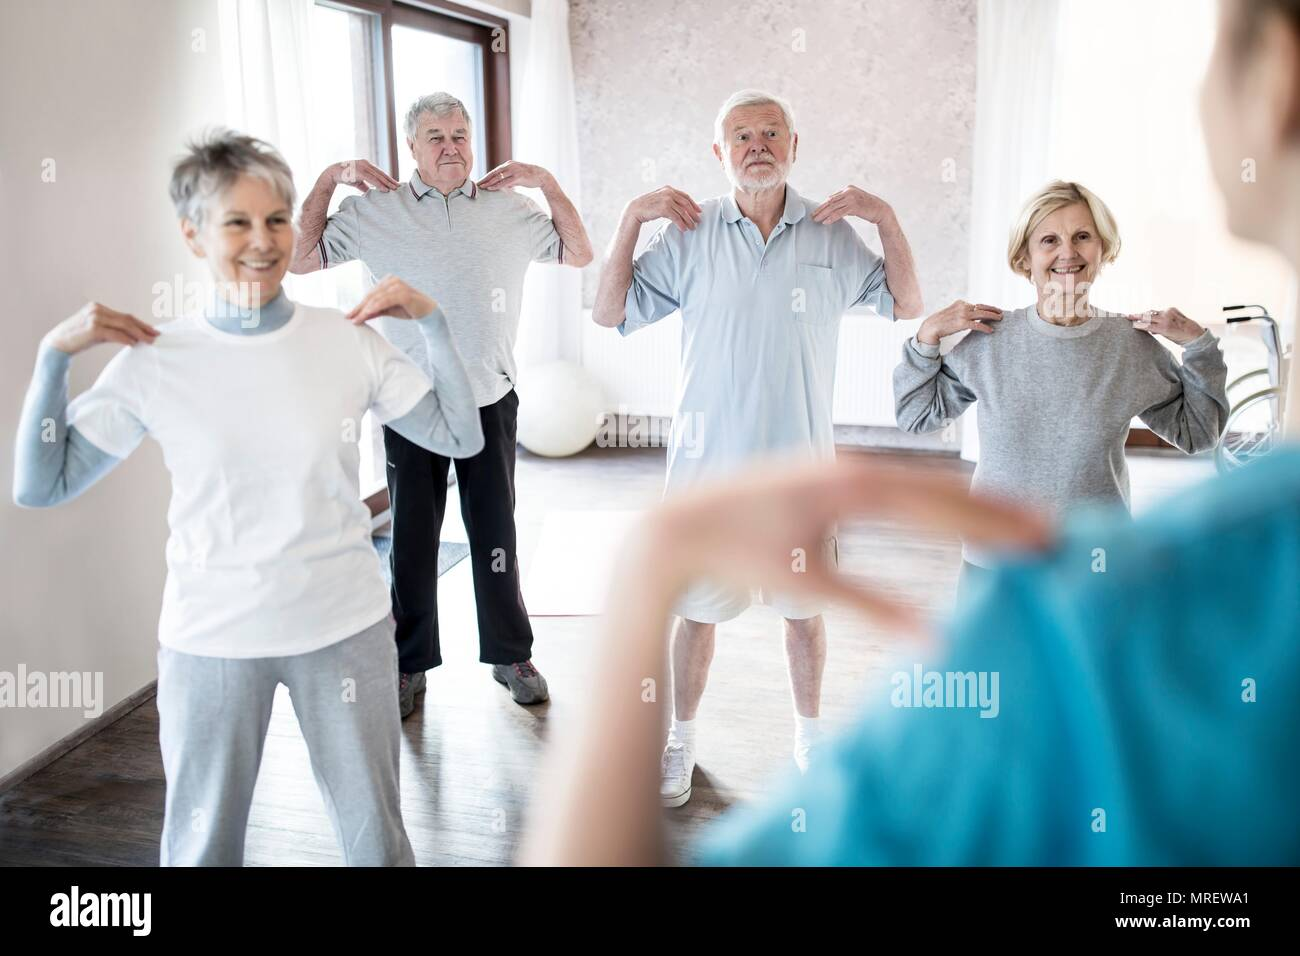 Senior adults doing exercise class. - Stock Image